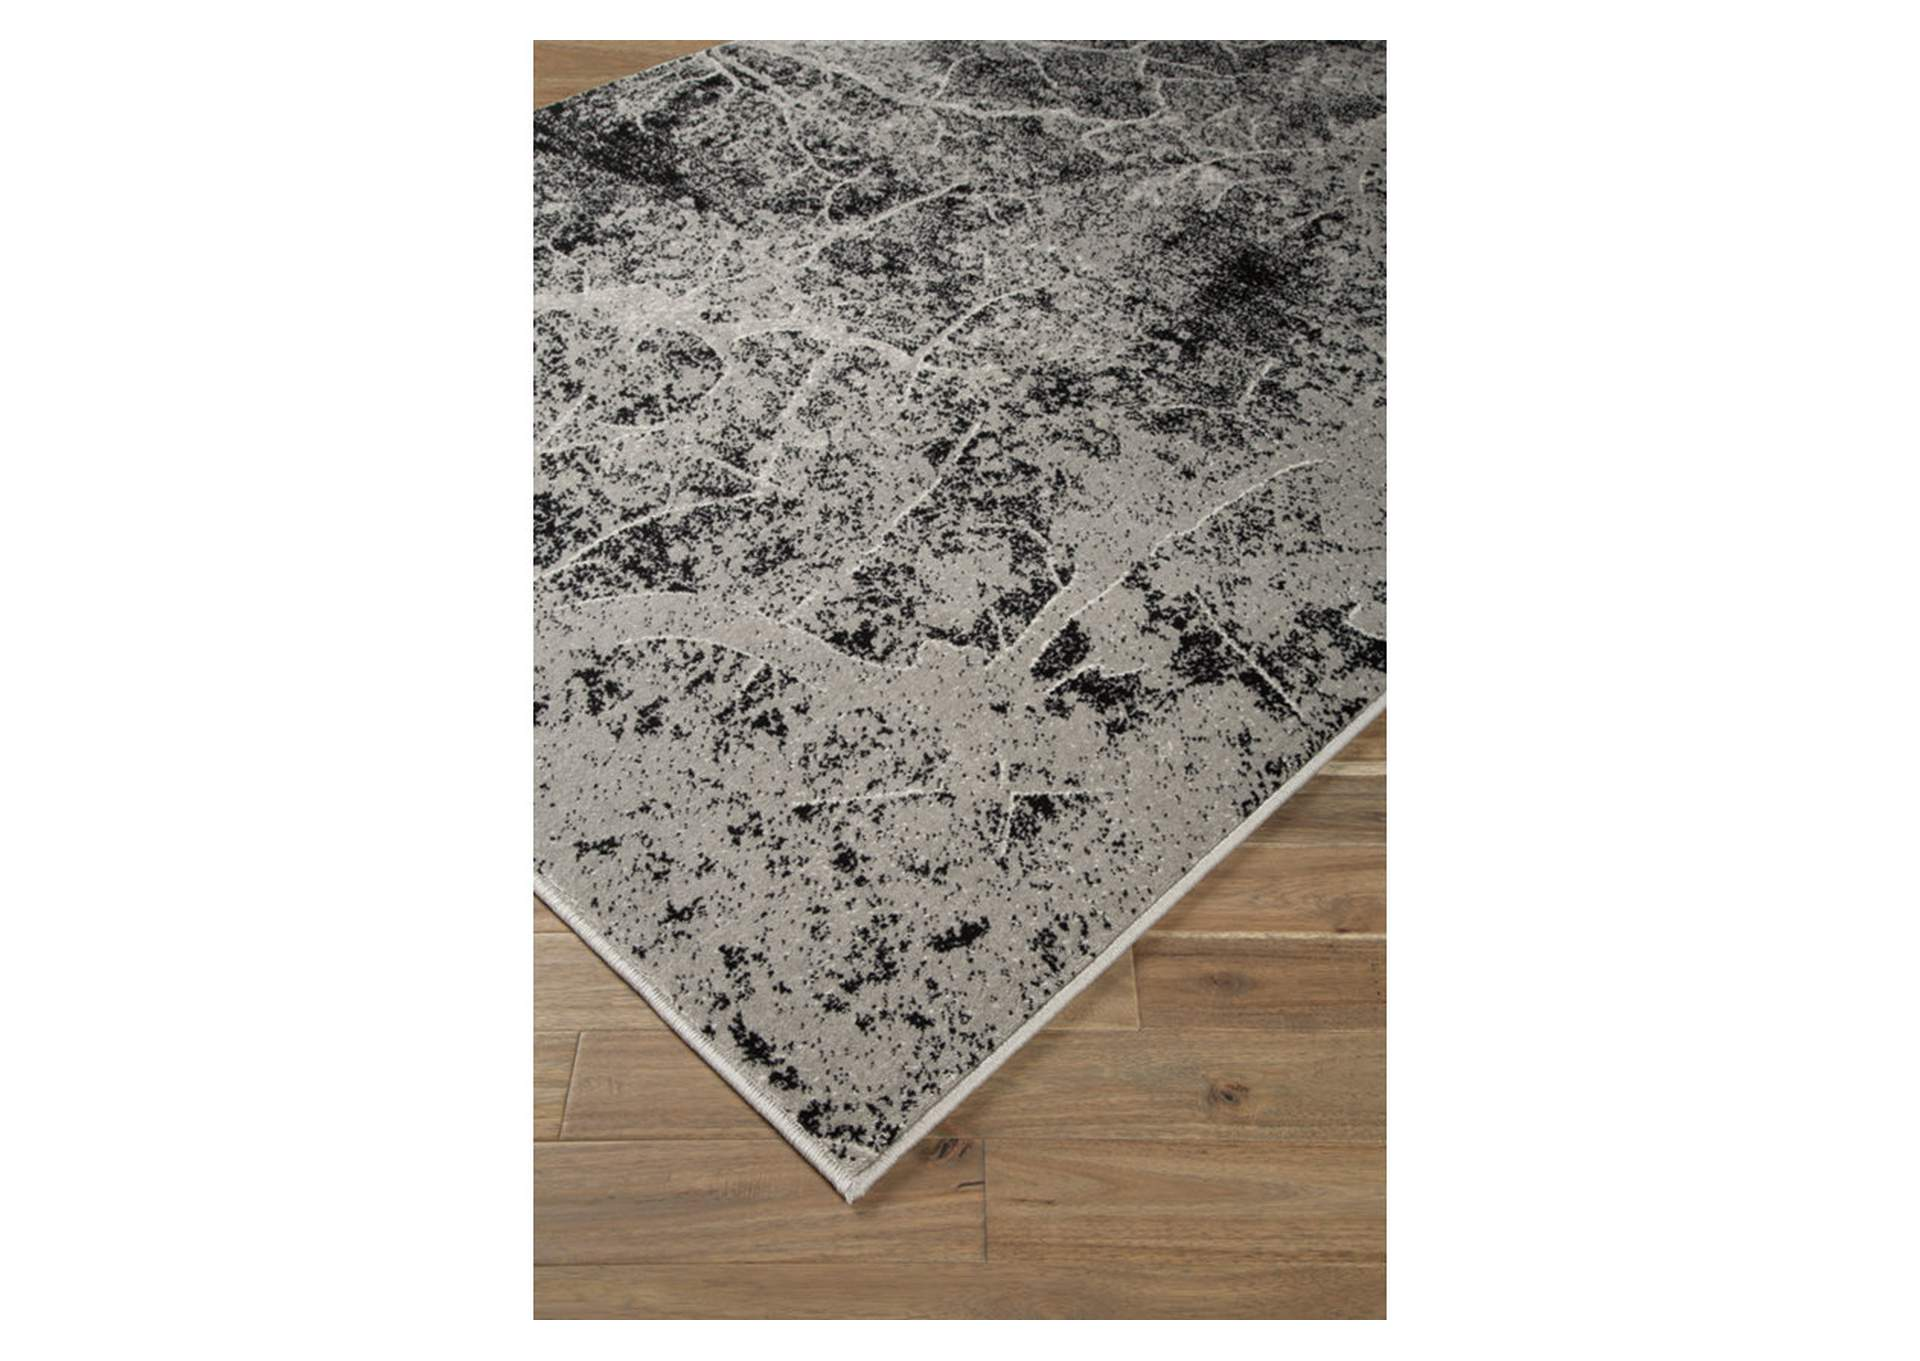 Cailey Black 8' x 10' Rug,Signature Design By Ashley